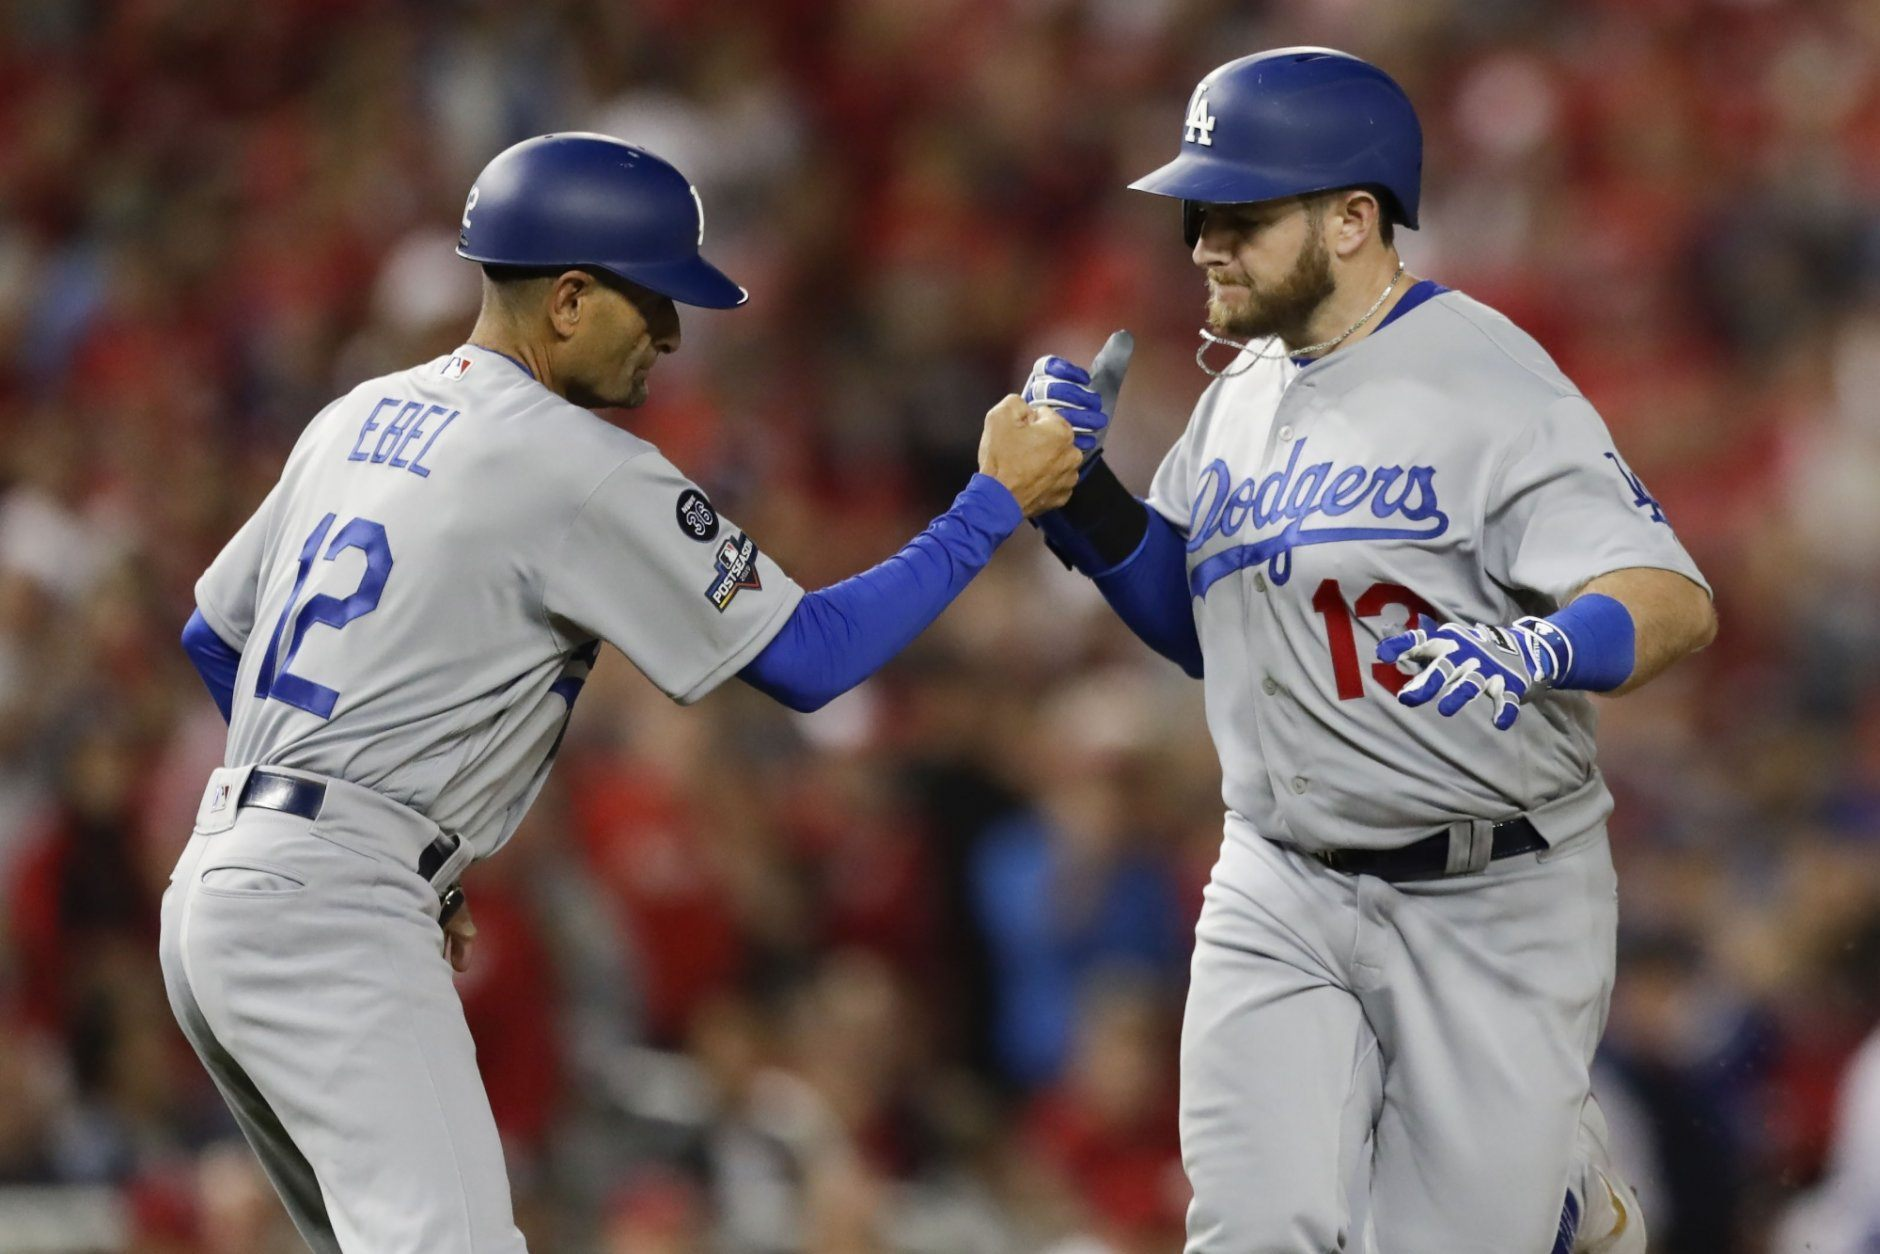 Los Angeles Dodgers first baseman Max Muncy celebrates his solo home run off Washington Nationals starting pitcher Anibal Sanchez with third base coach Dino Ebel (12) during the fifth inning in Game 3 of a baseball National League Division Series on Sunday, Oct. 6, 2019, in Washington. (AP Photo/Julio Cortez)